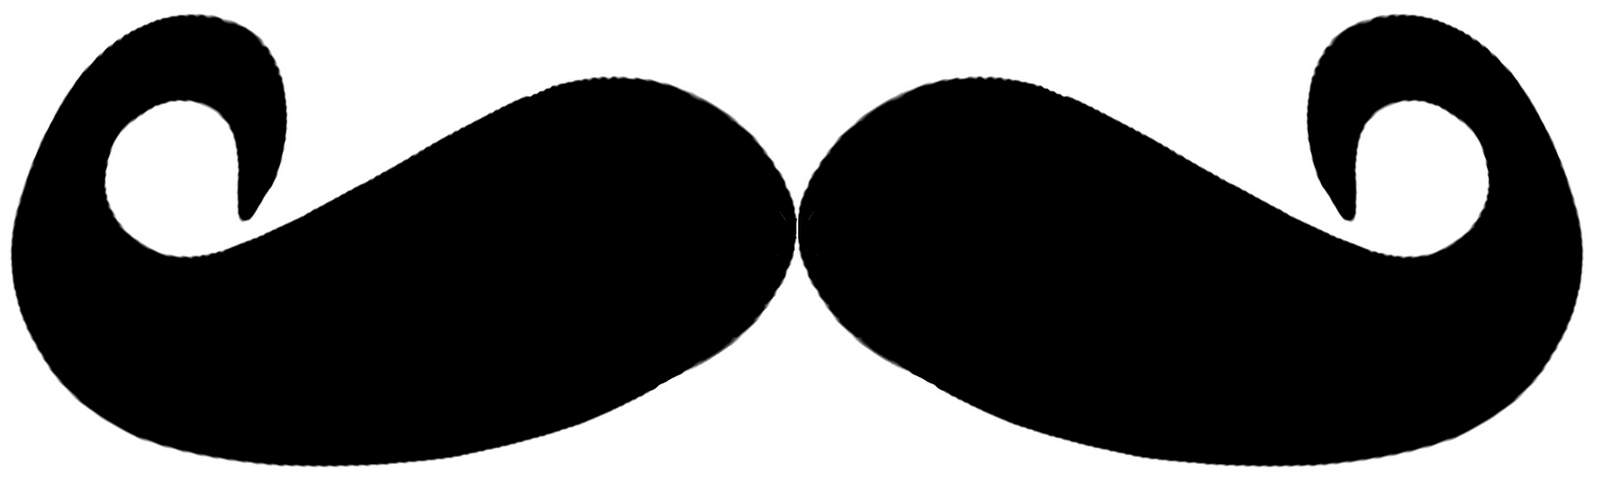 Fake mustache clipart image royalty free library Fake Mustache Png (+) - Free Download | fourjay.org image royalty free library